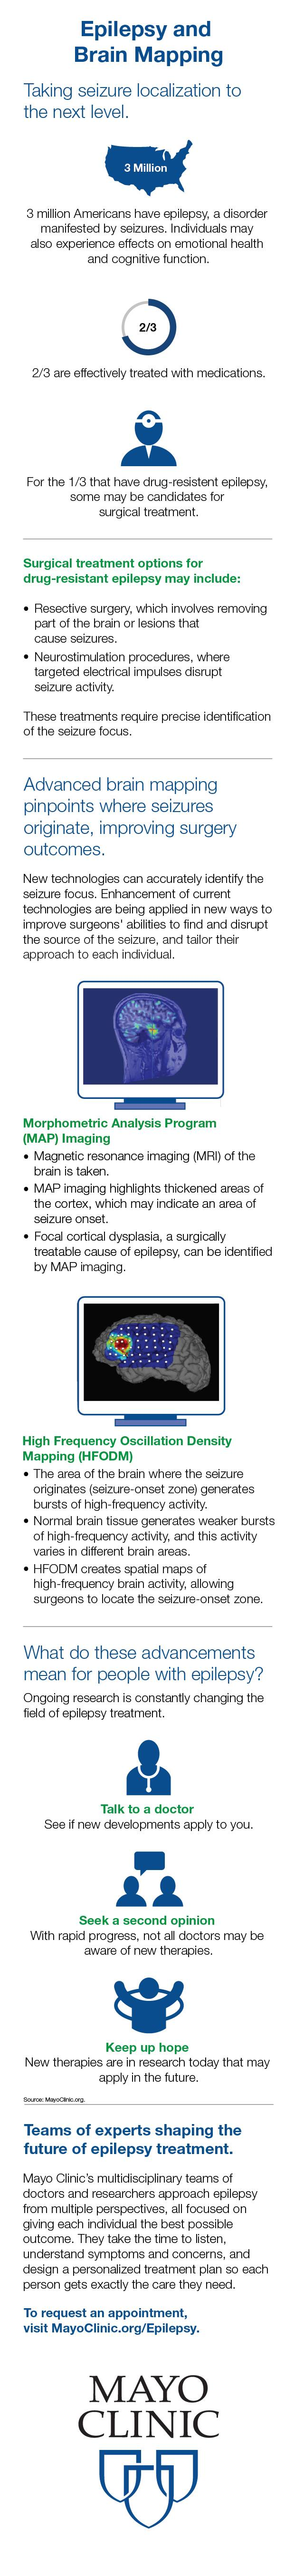 infographic design for Epilepsy Neuroimaging